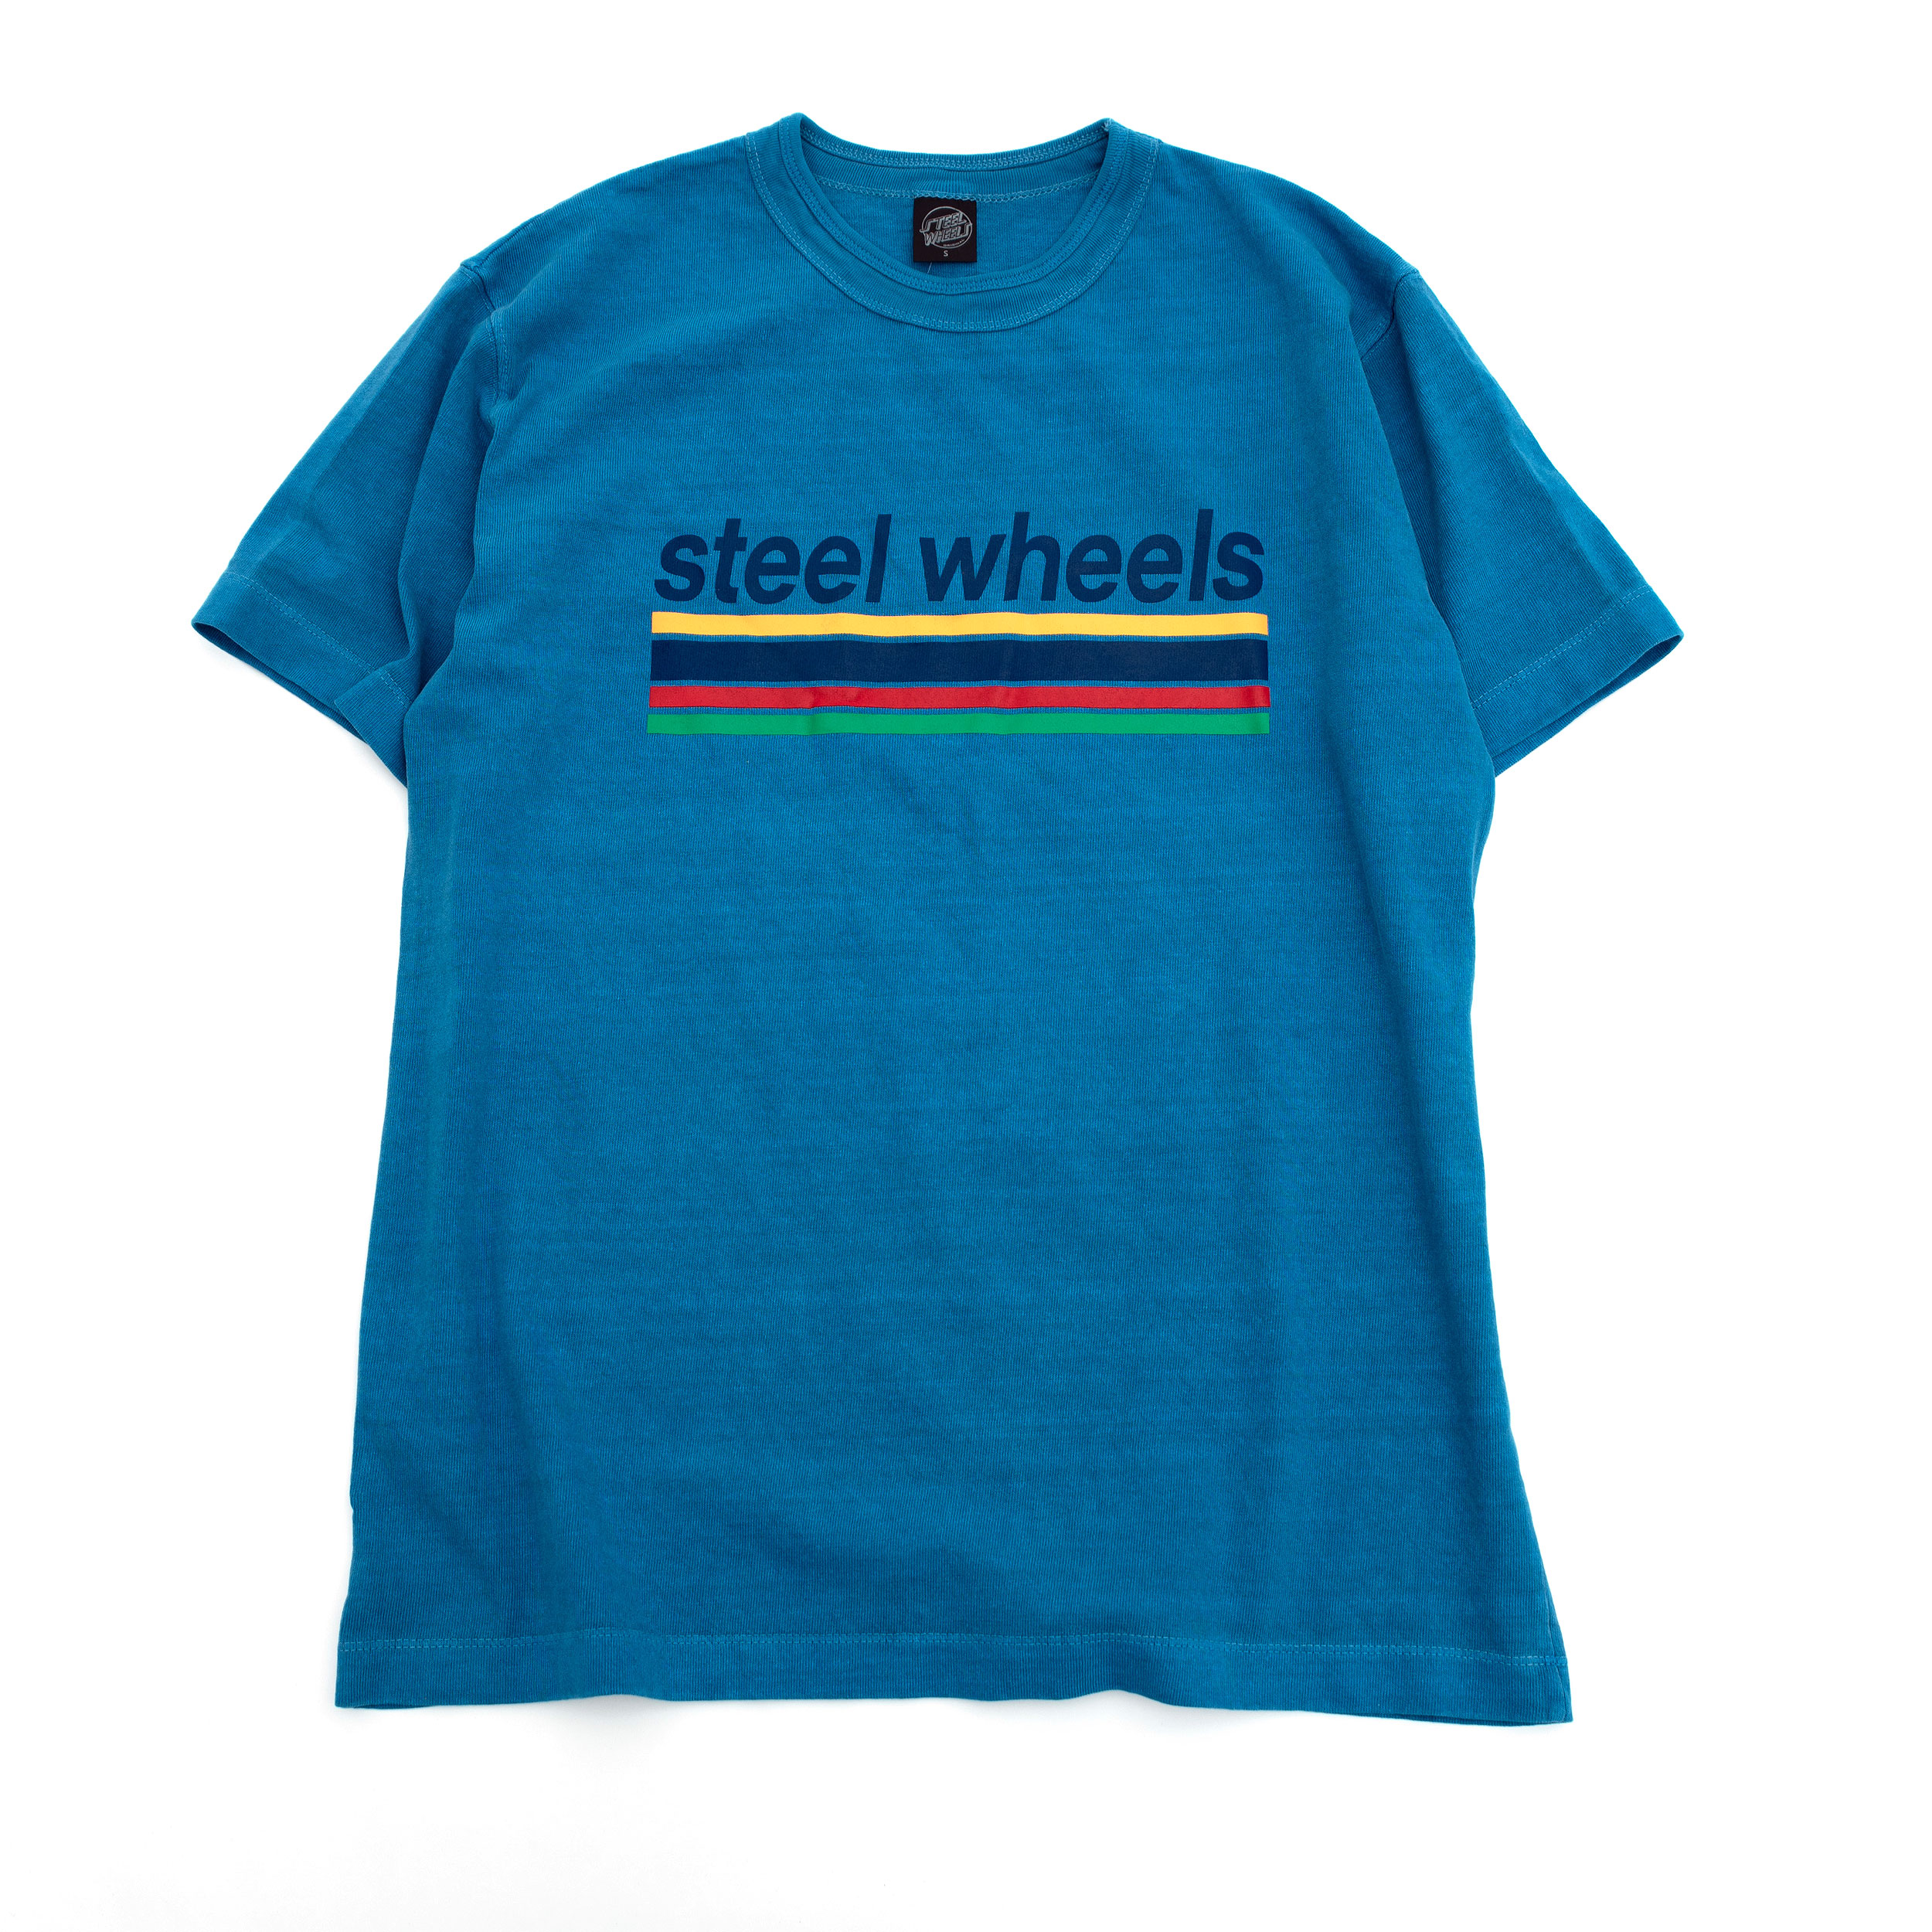 SUMMER DYED LOGO T SHIRT (BLUE)